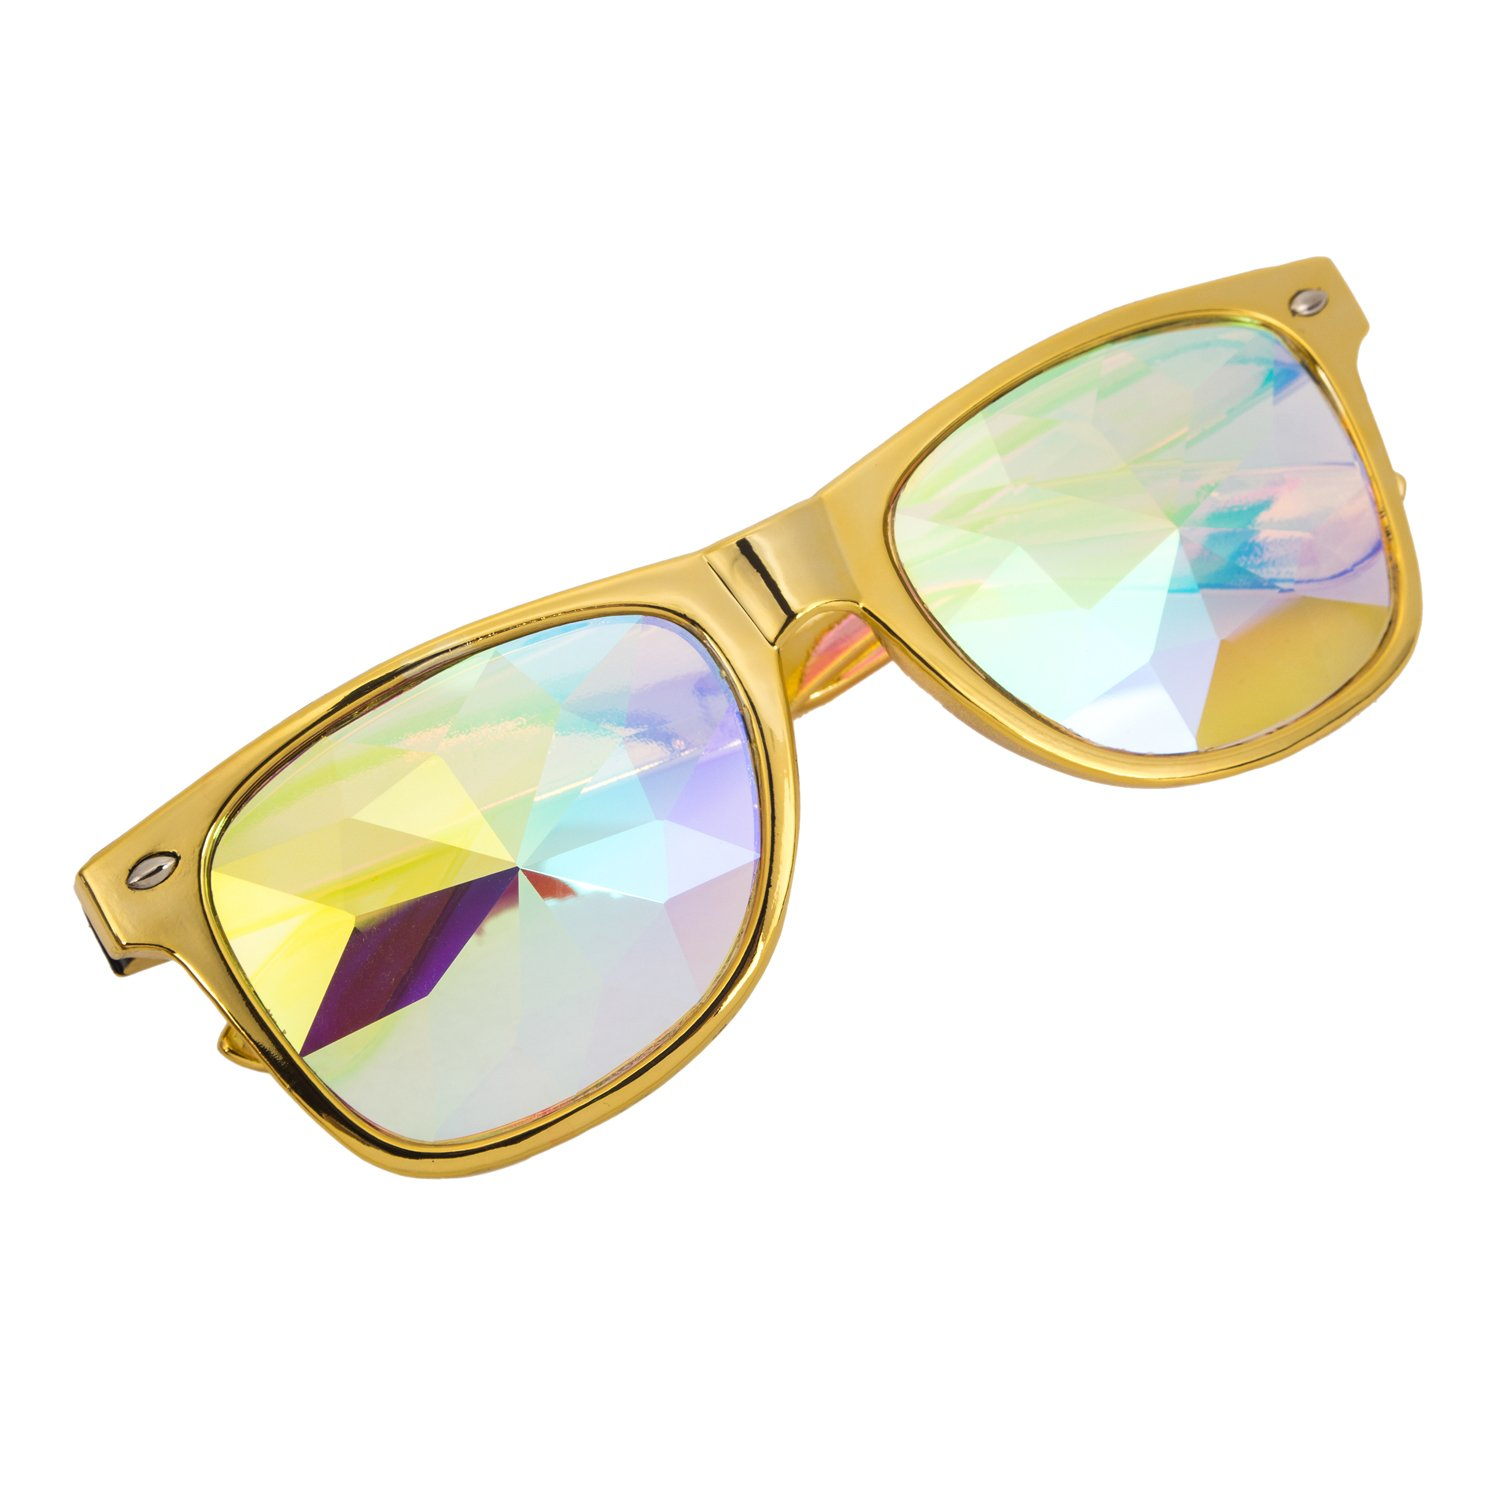 Kaleidoscope Glasses - Rainbow Rave Prism Diffraction Crystal Lens Sunglasses Goggles